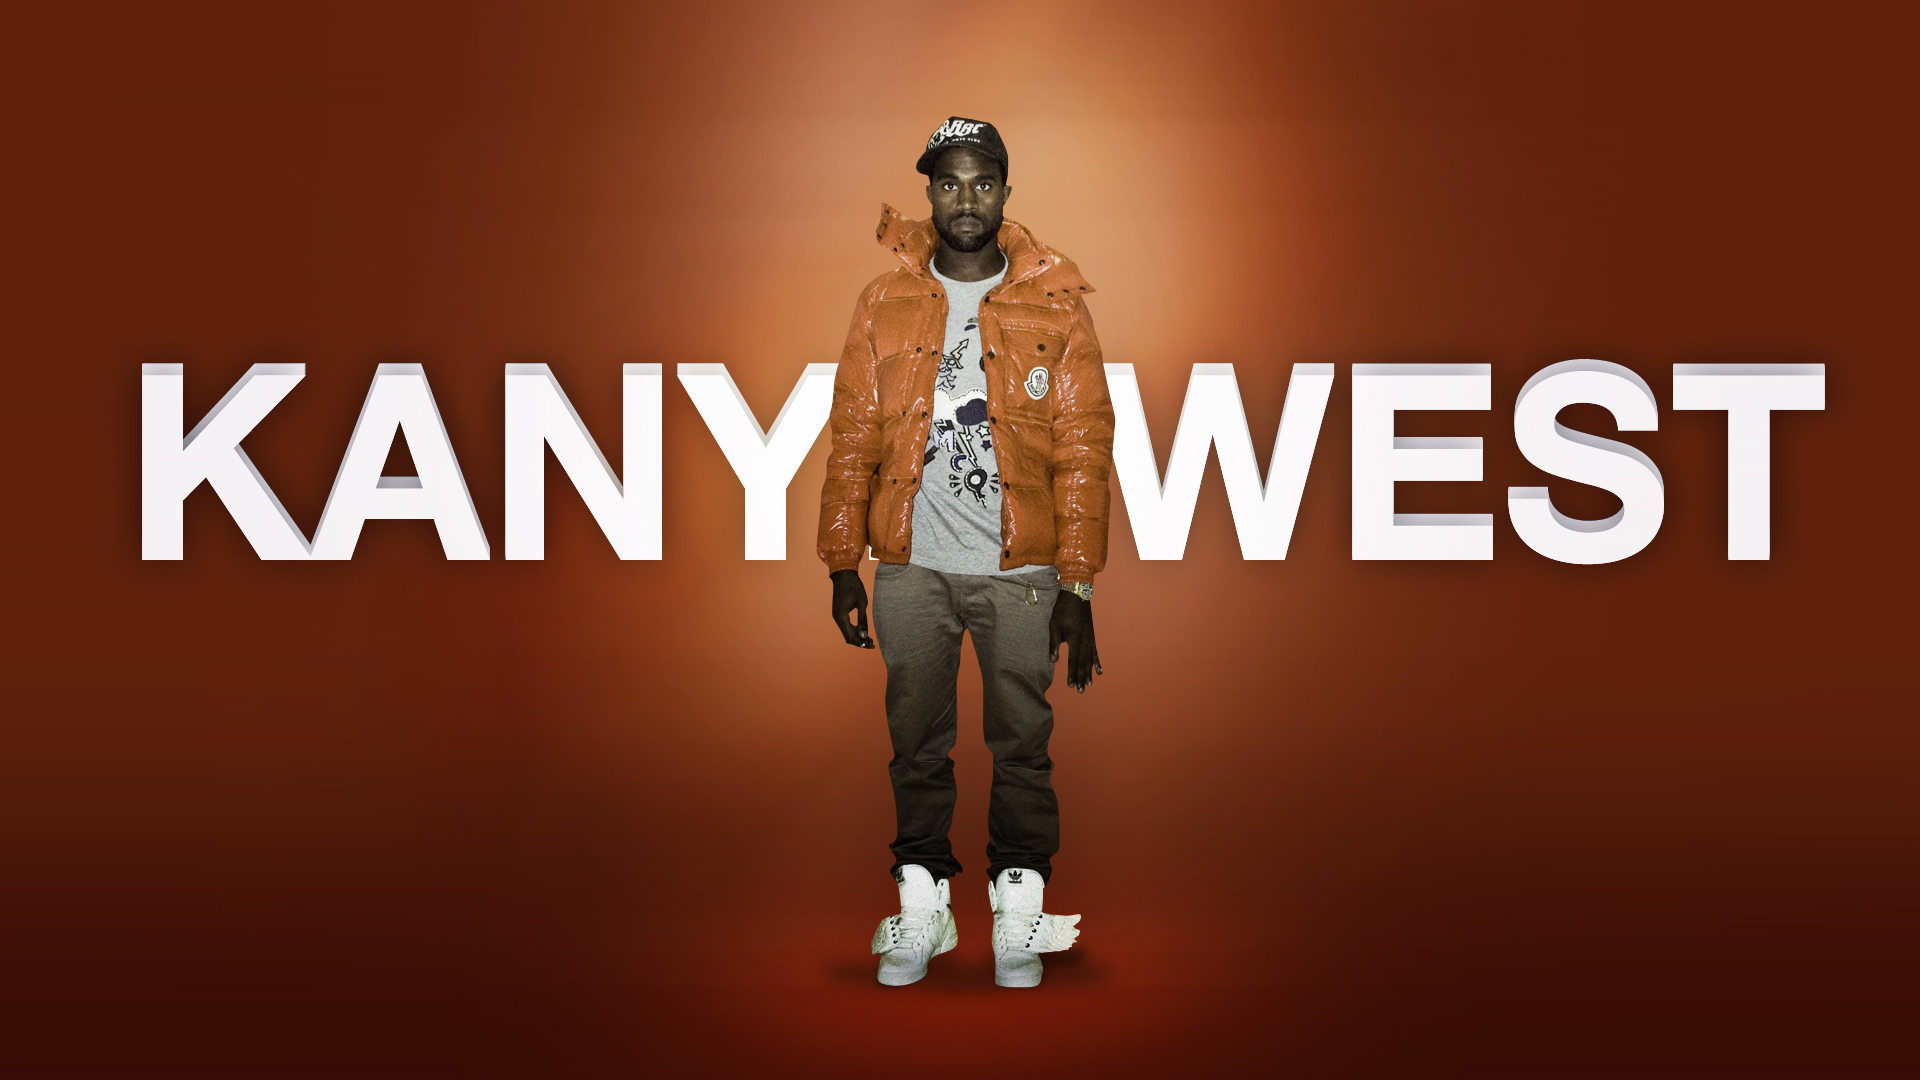 Kanye West HD Wallpaper Power, 42 Kanye West Power Images for Free ...